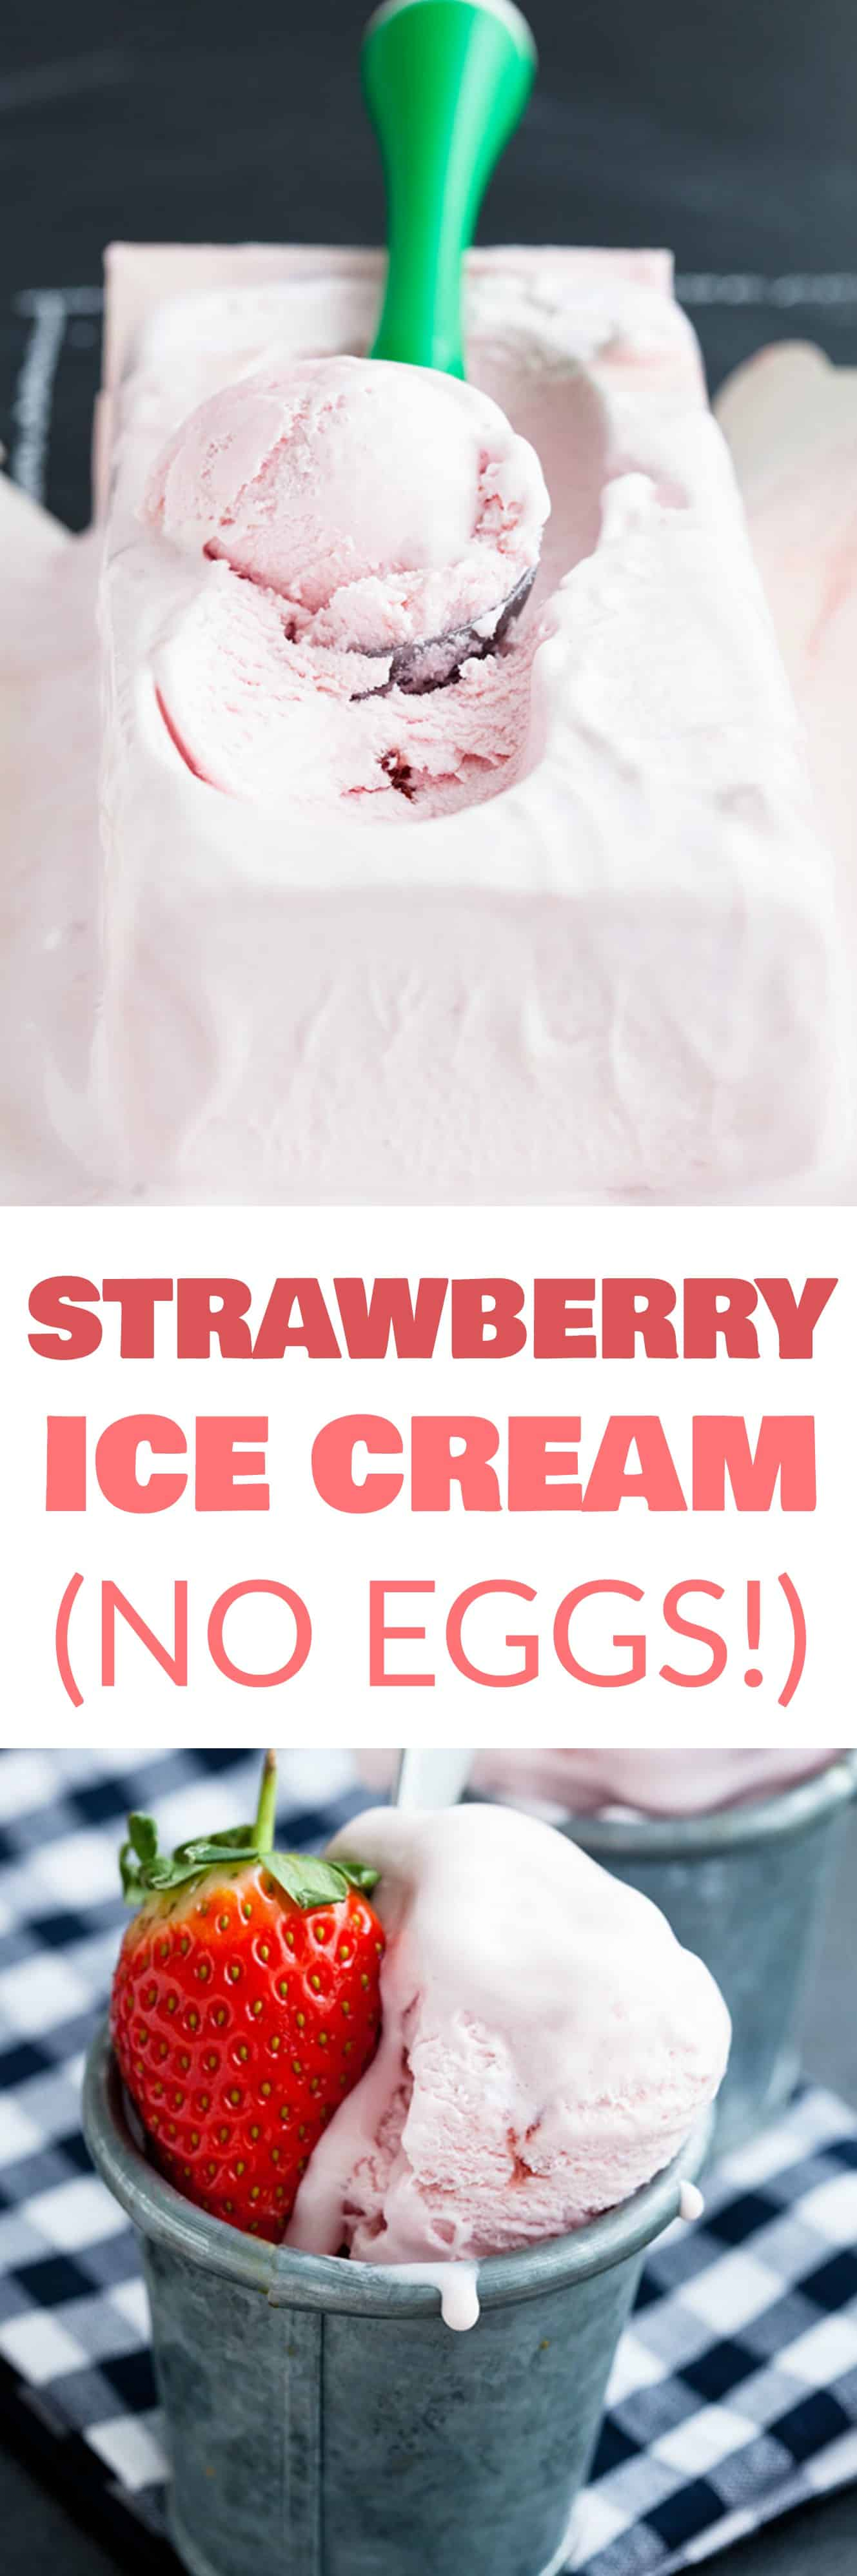 HOMEMADE STRAWBERRY ICE CREAM made with no eggs! This homemade recipe is easy to make in your ice cream maker and is filled with fresh strawberries! It's made with heavy cream, half and half and is eggless! This is one of the best Summer dessert recipes to eat!